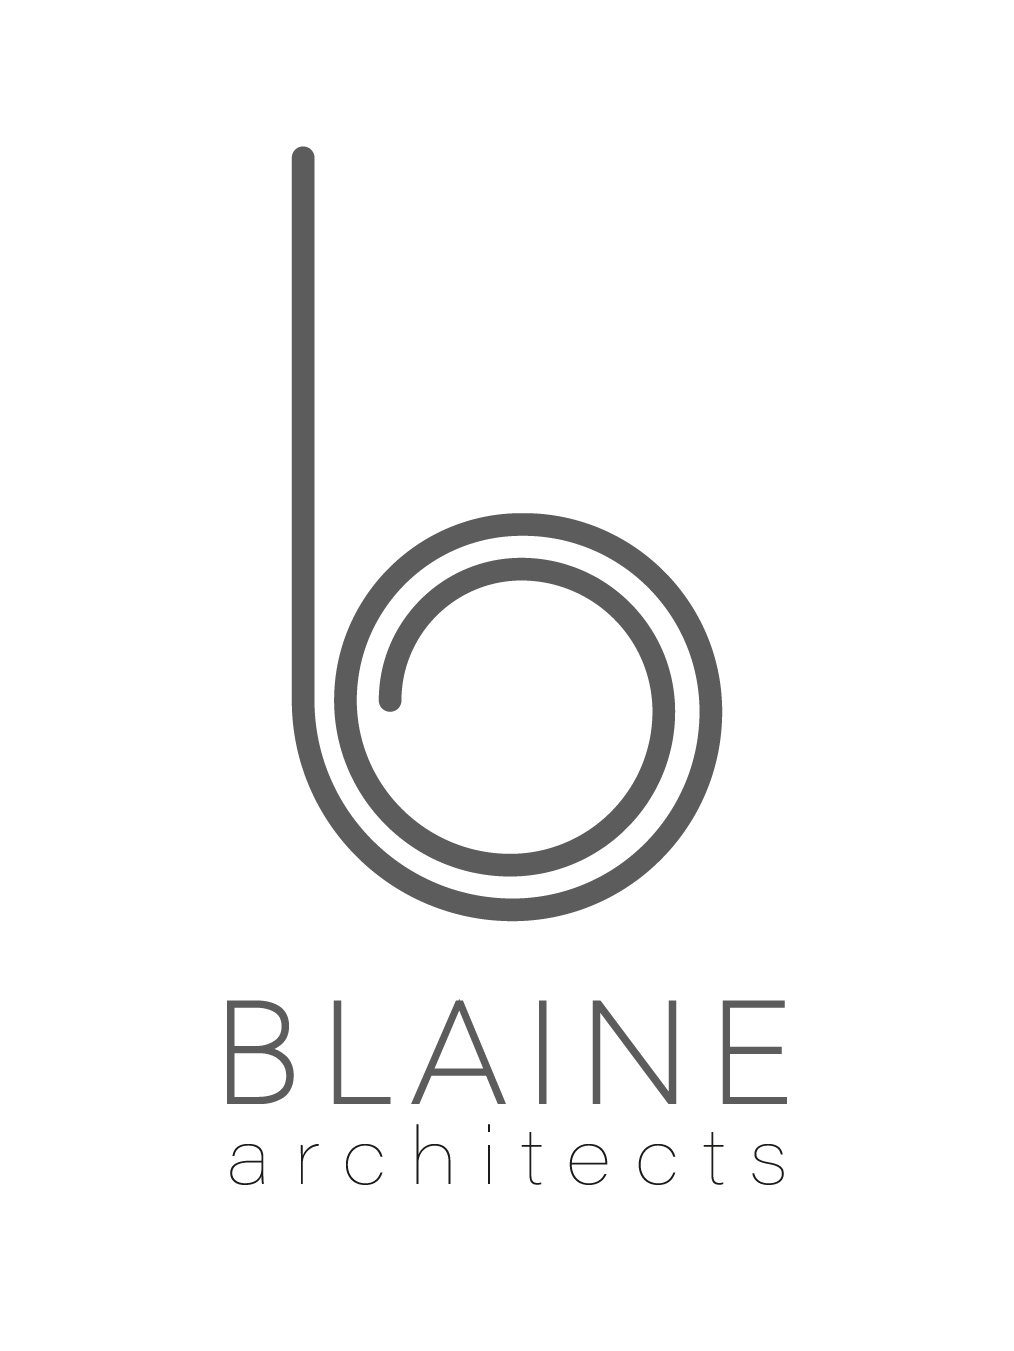 BLAINE Architects Has a Top-Rated San Jose Architect Offering Professional Services in CA